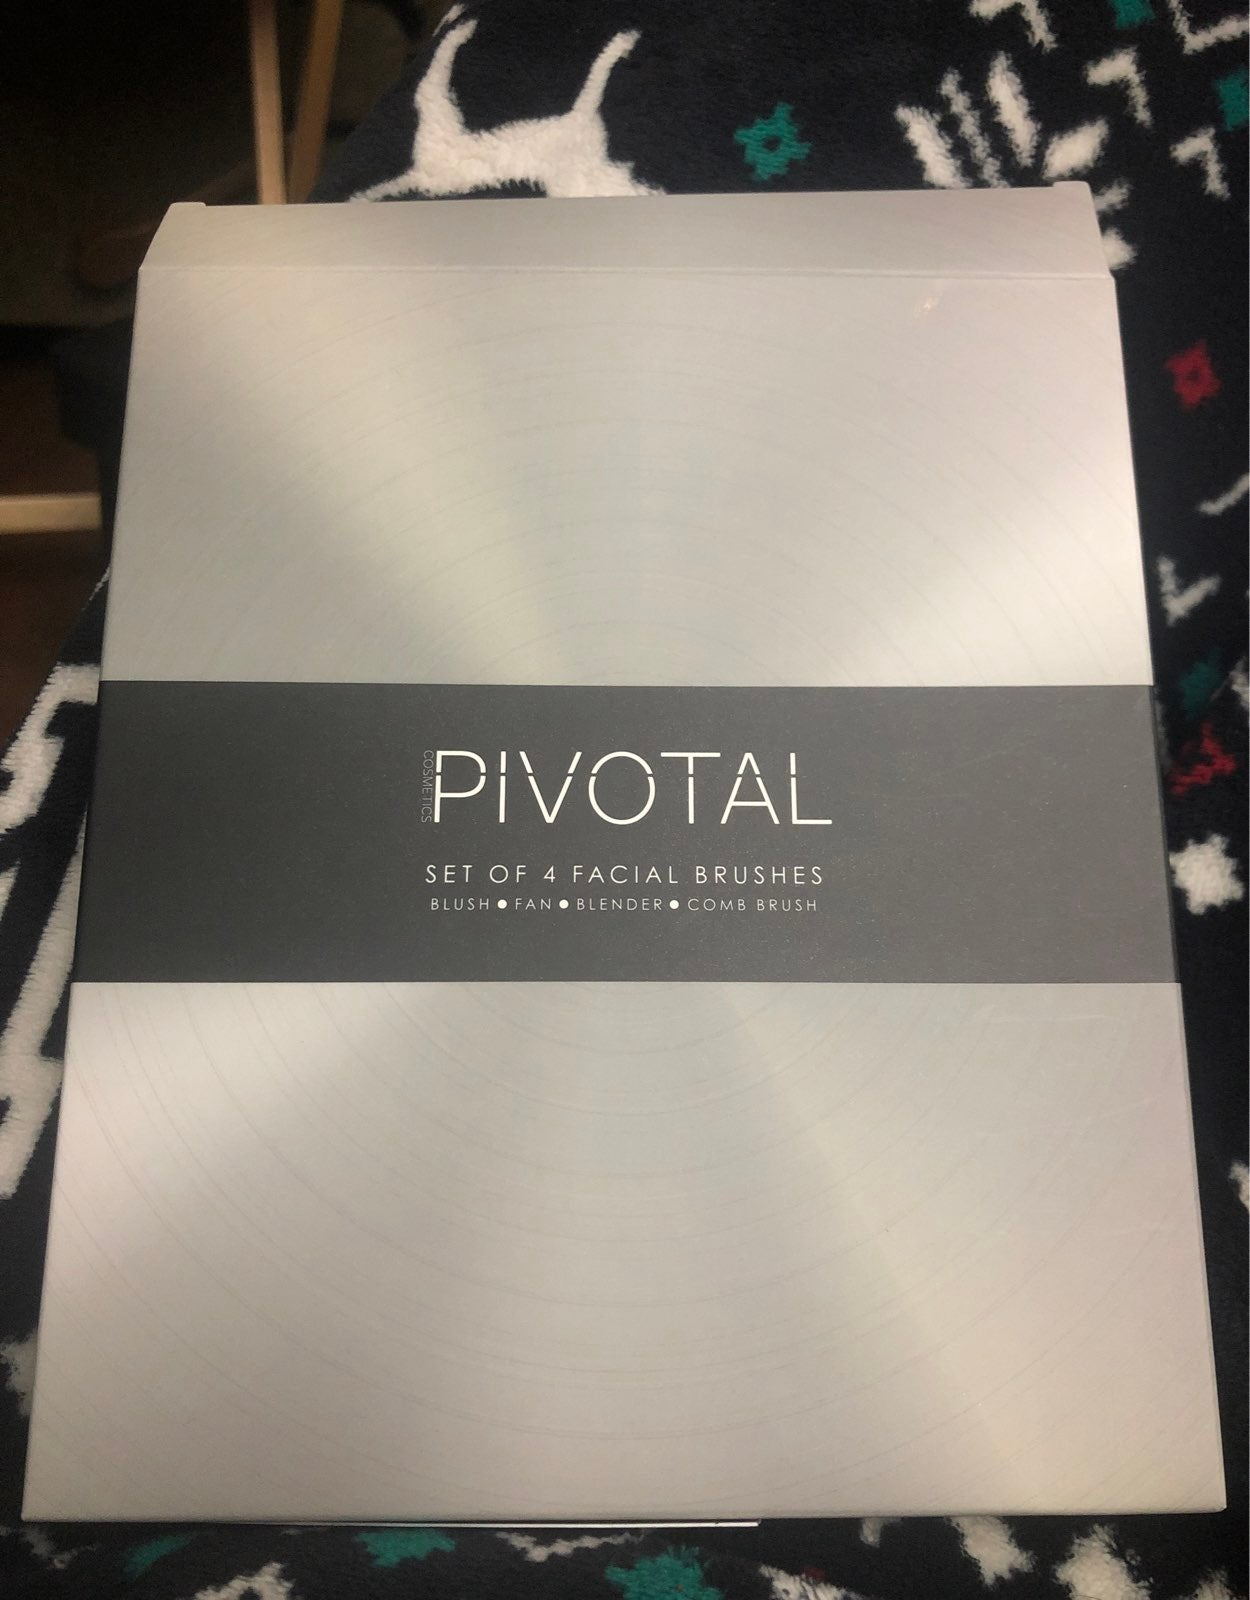 Pivotal makeup brushes